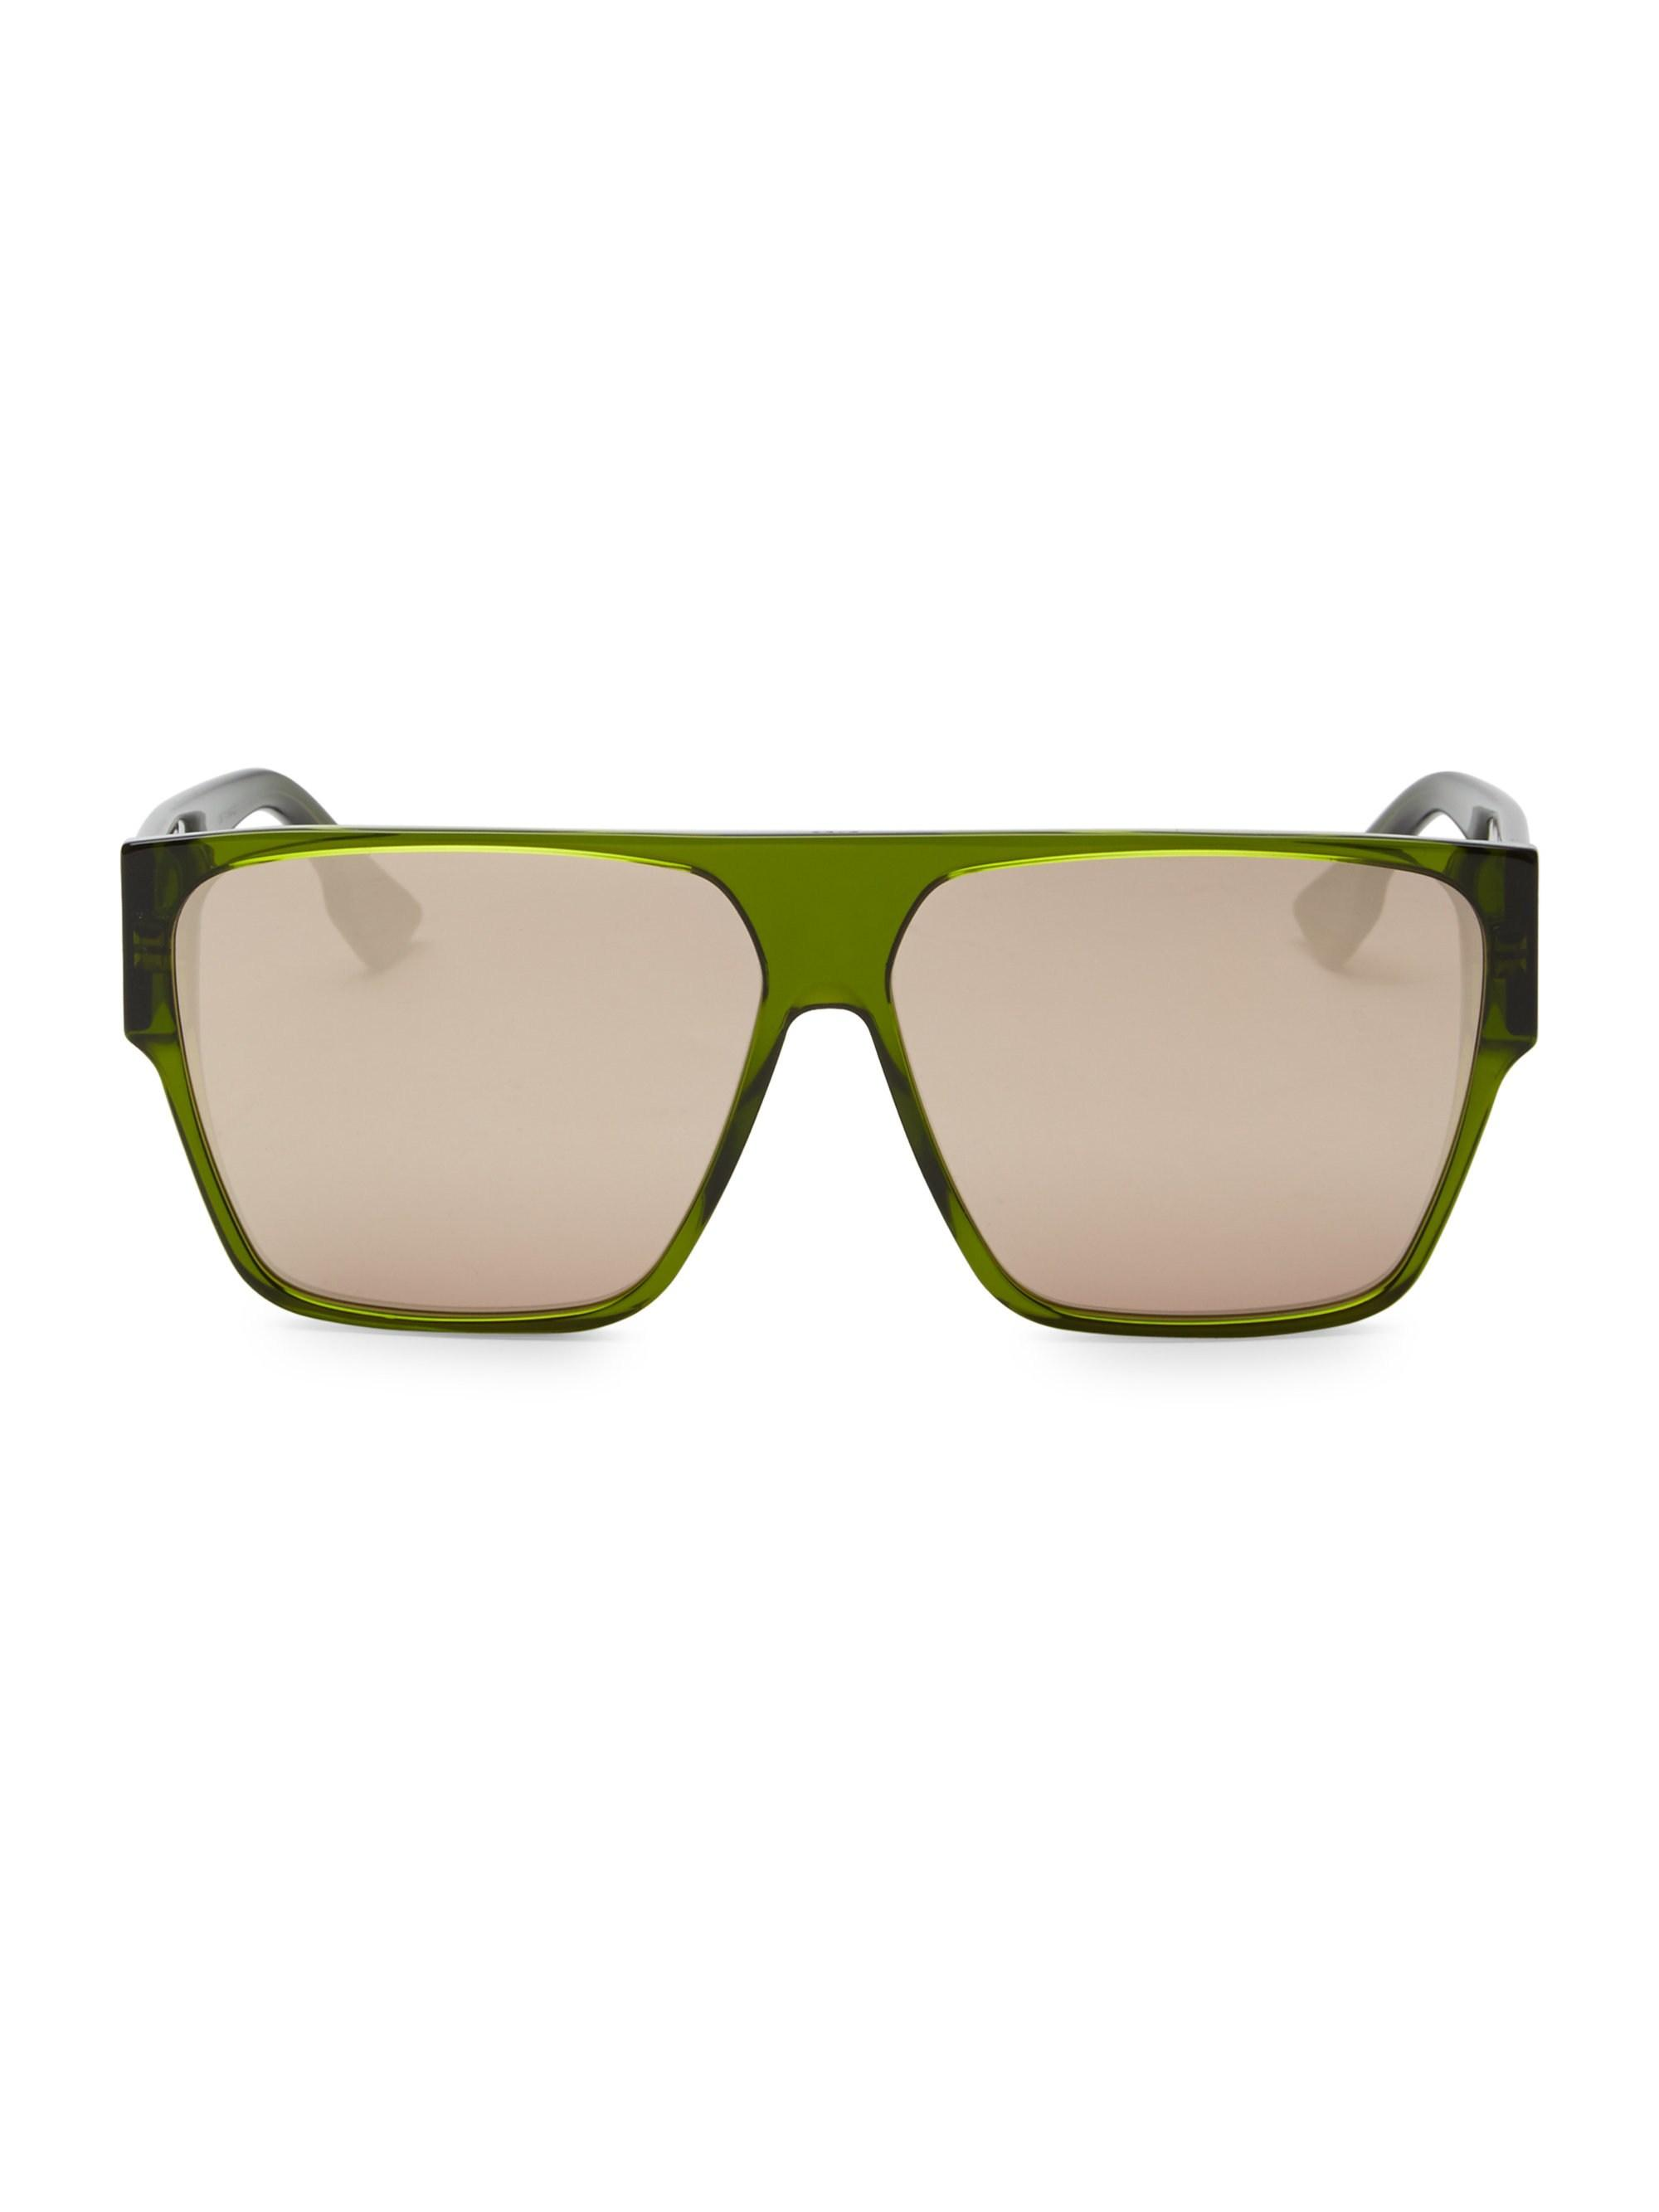 488dc60eb9d4 Lyst - Dior Women s 62mm Hit Flat Top Sunglasses - Brown in Green